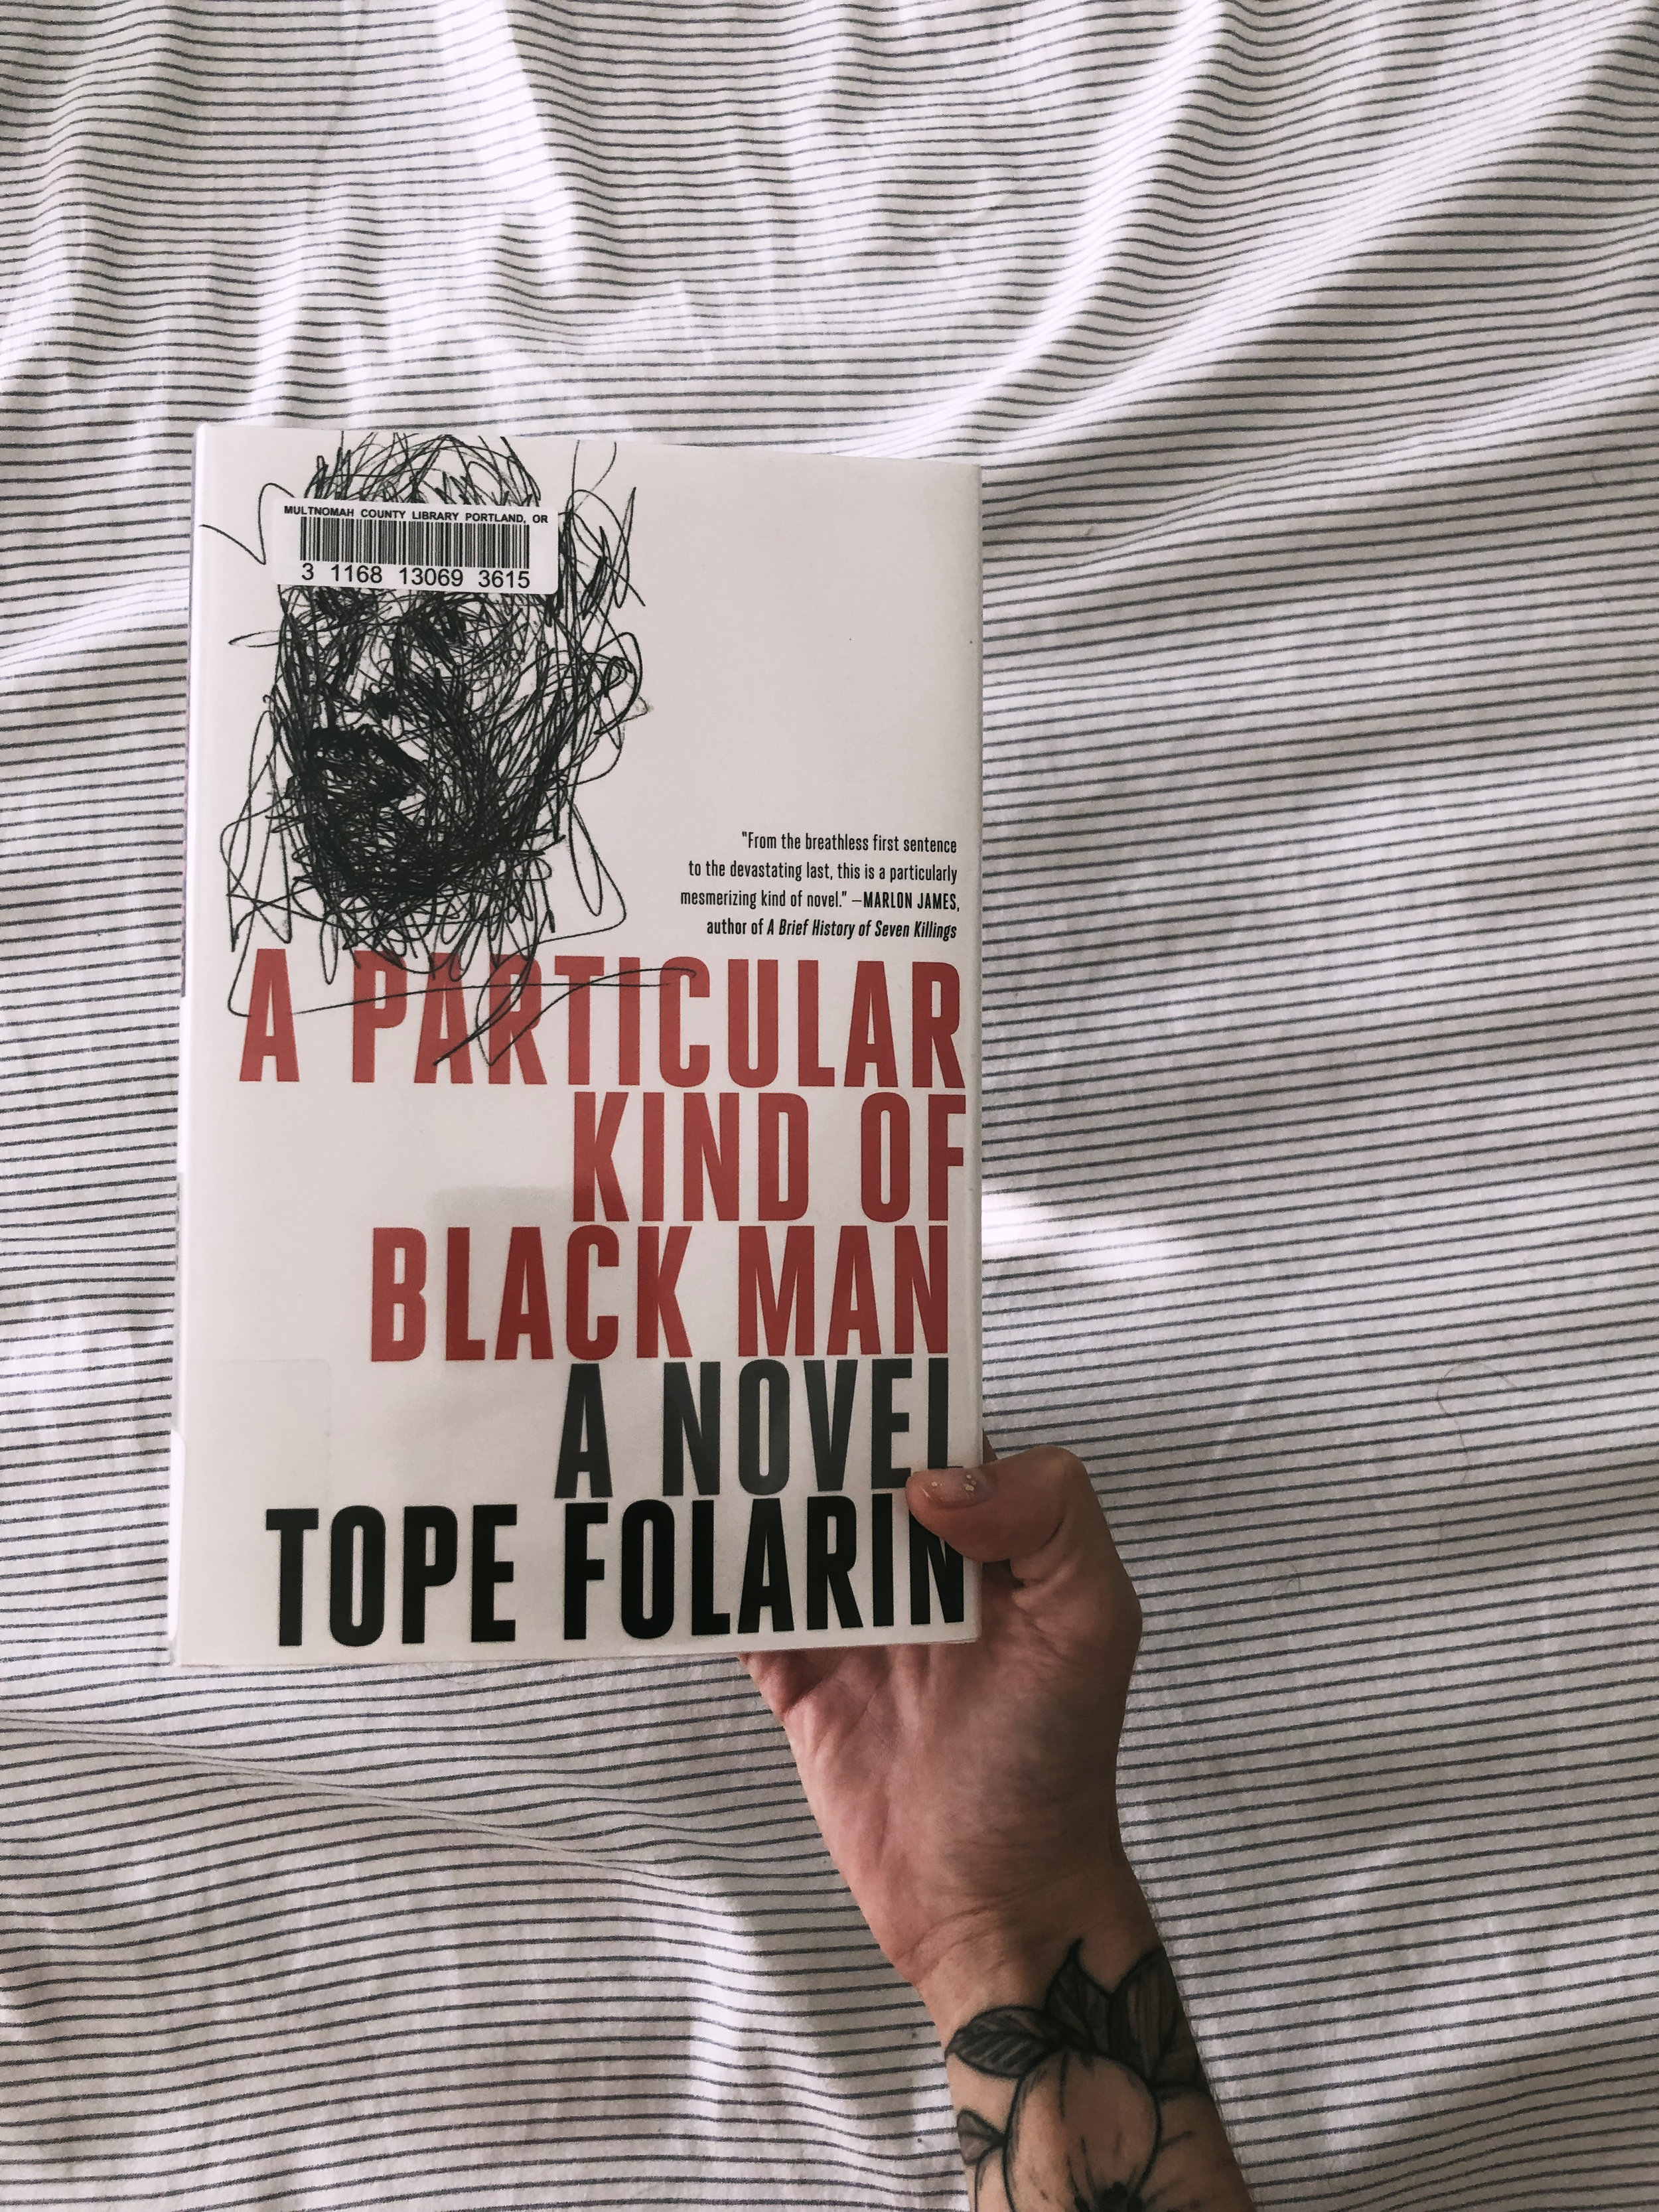 A Particular Kind of Black Man - by Tope FolarinAnother really beautiful book, I absolutely flew through this one. It talks about the struggles of being an immigrant and the racism that so many people experience in America. This novel also plays on the concept of memory and how our memories shape us as humans.